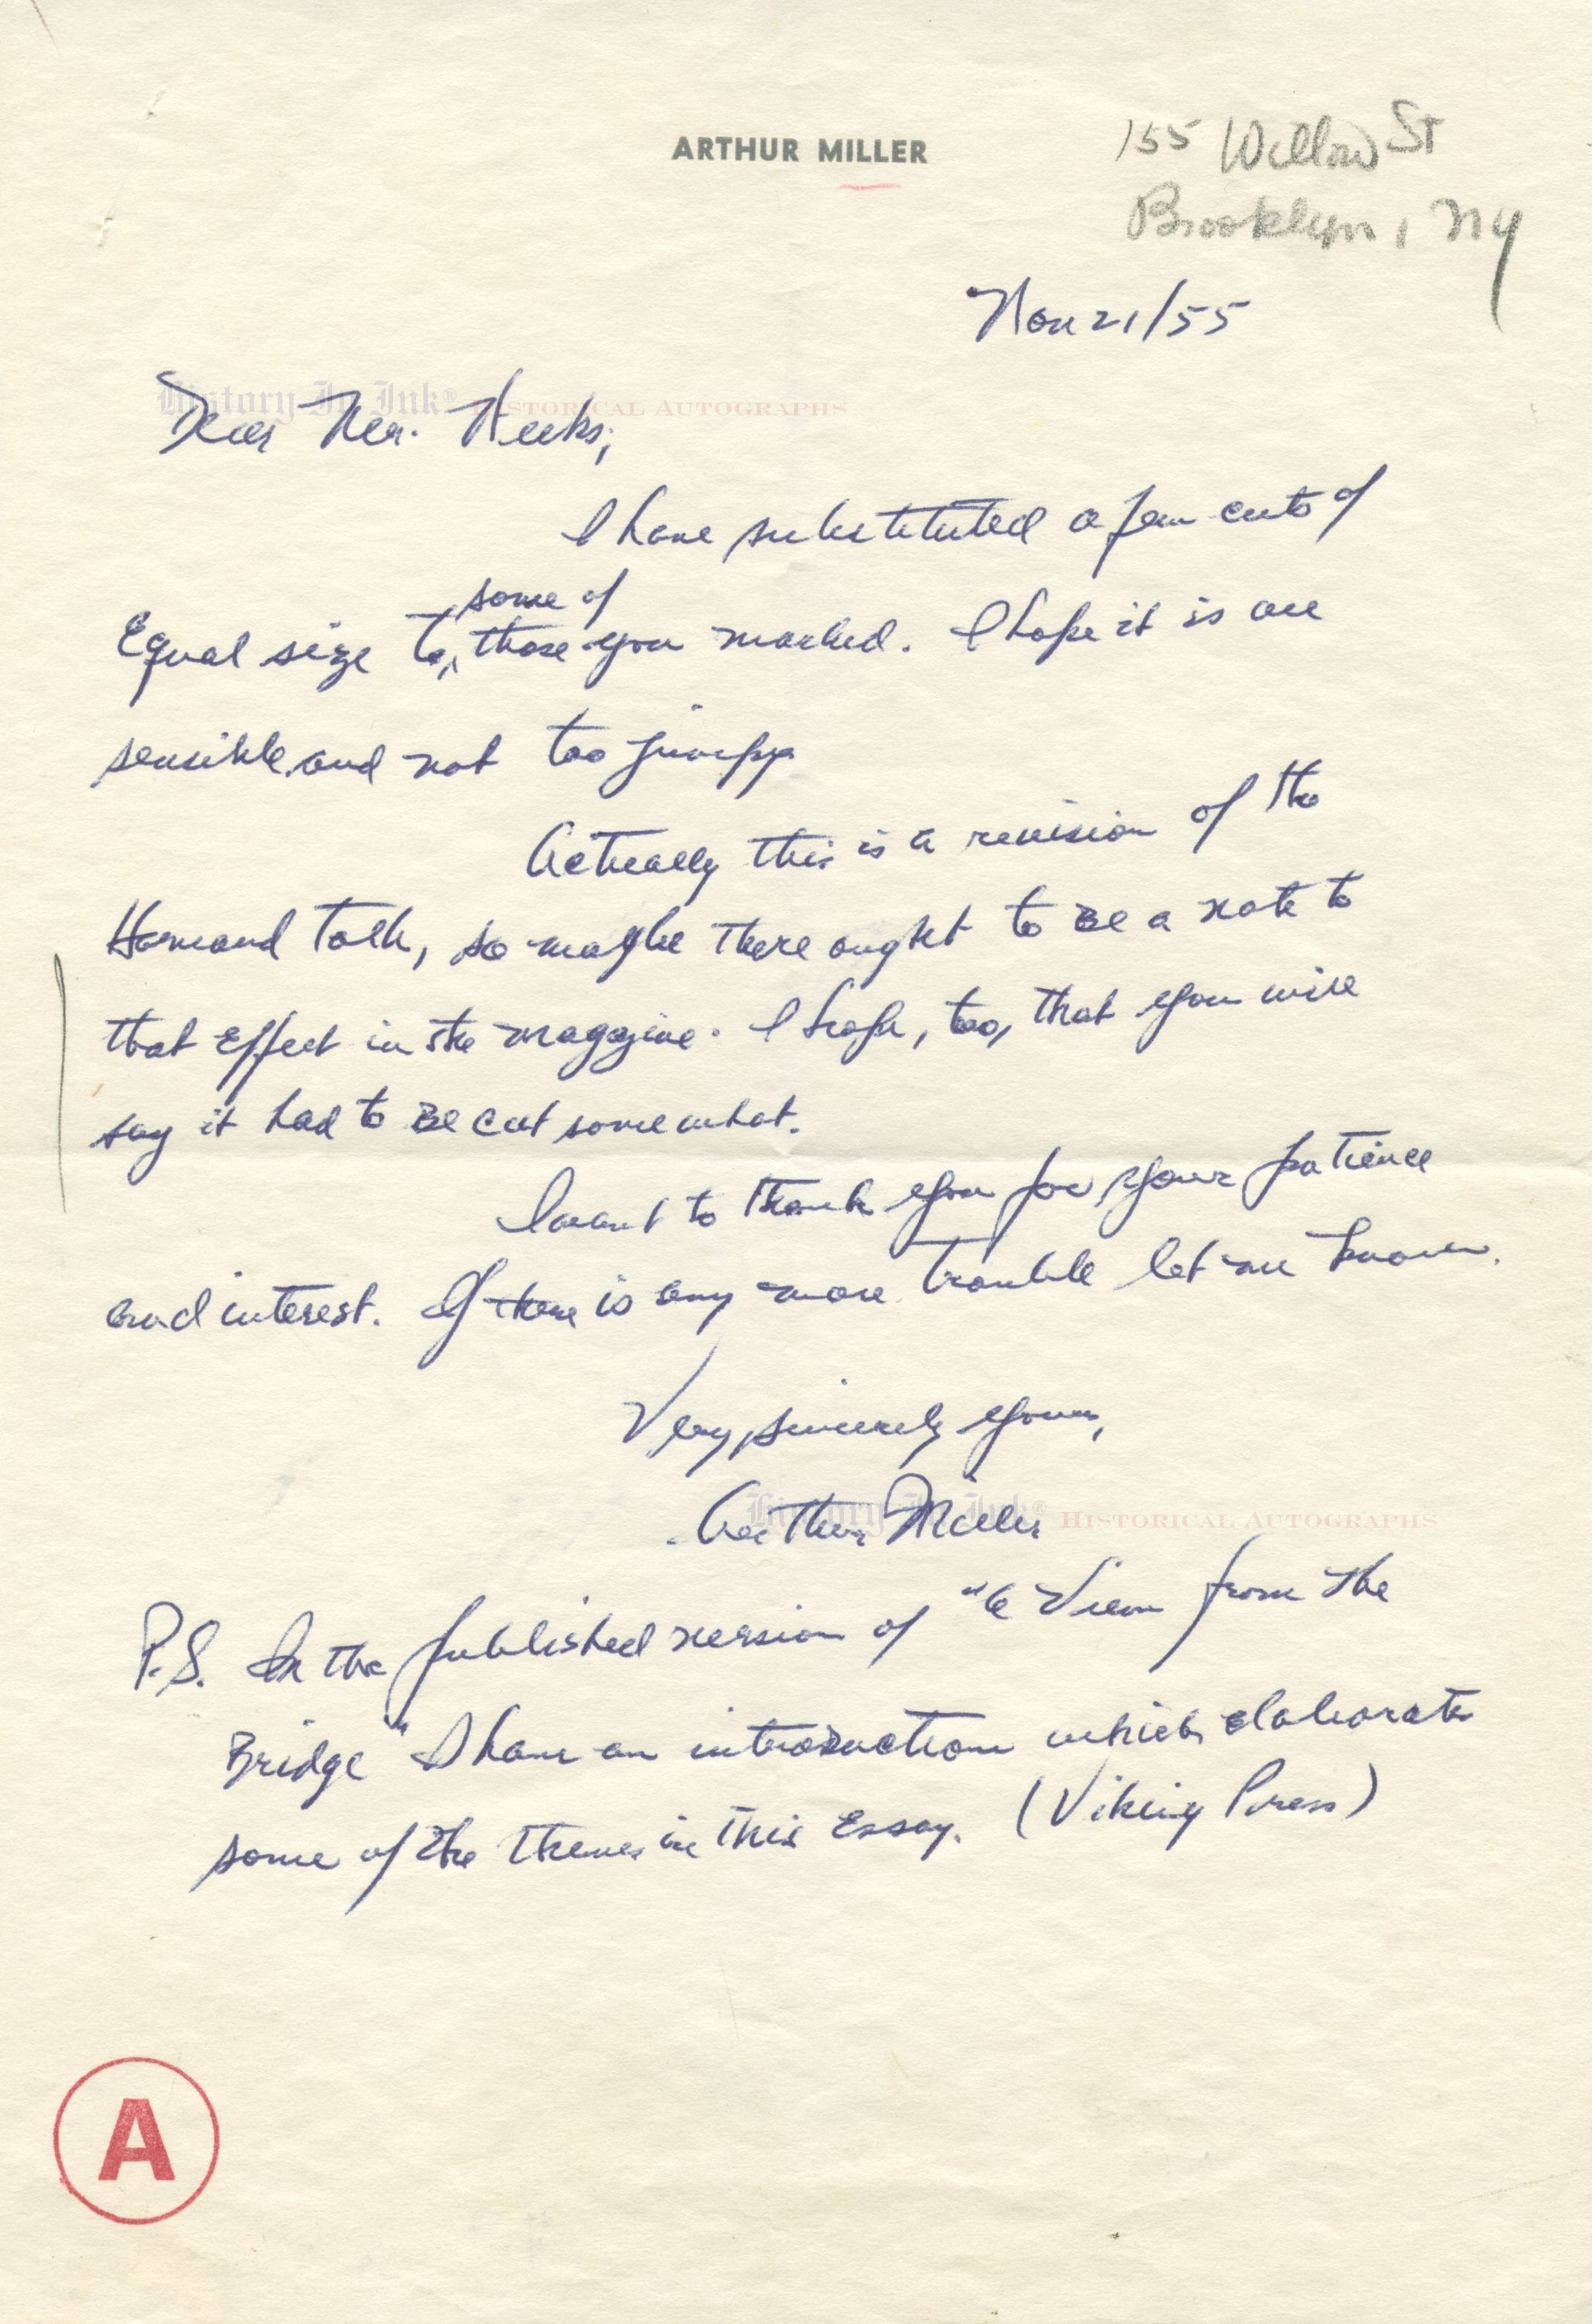 autograph handwritten letter by playwright arthur autograph 1112013 handwritten letter by playwright arthur miller 11 21 1955